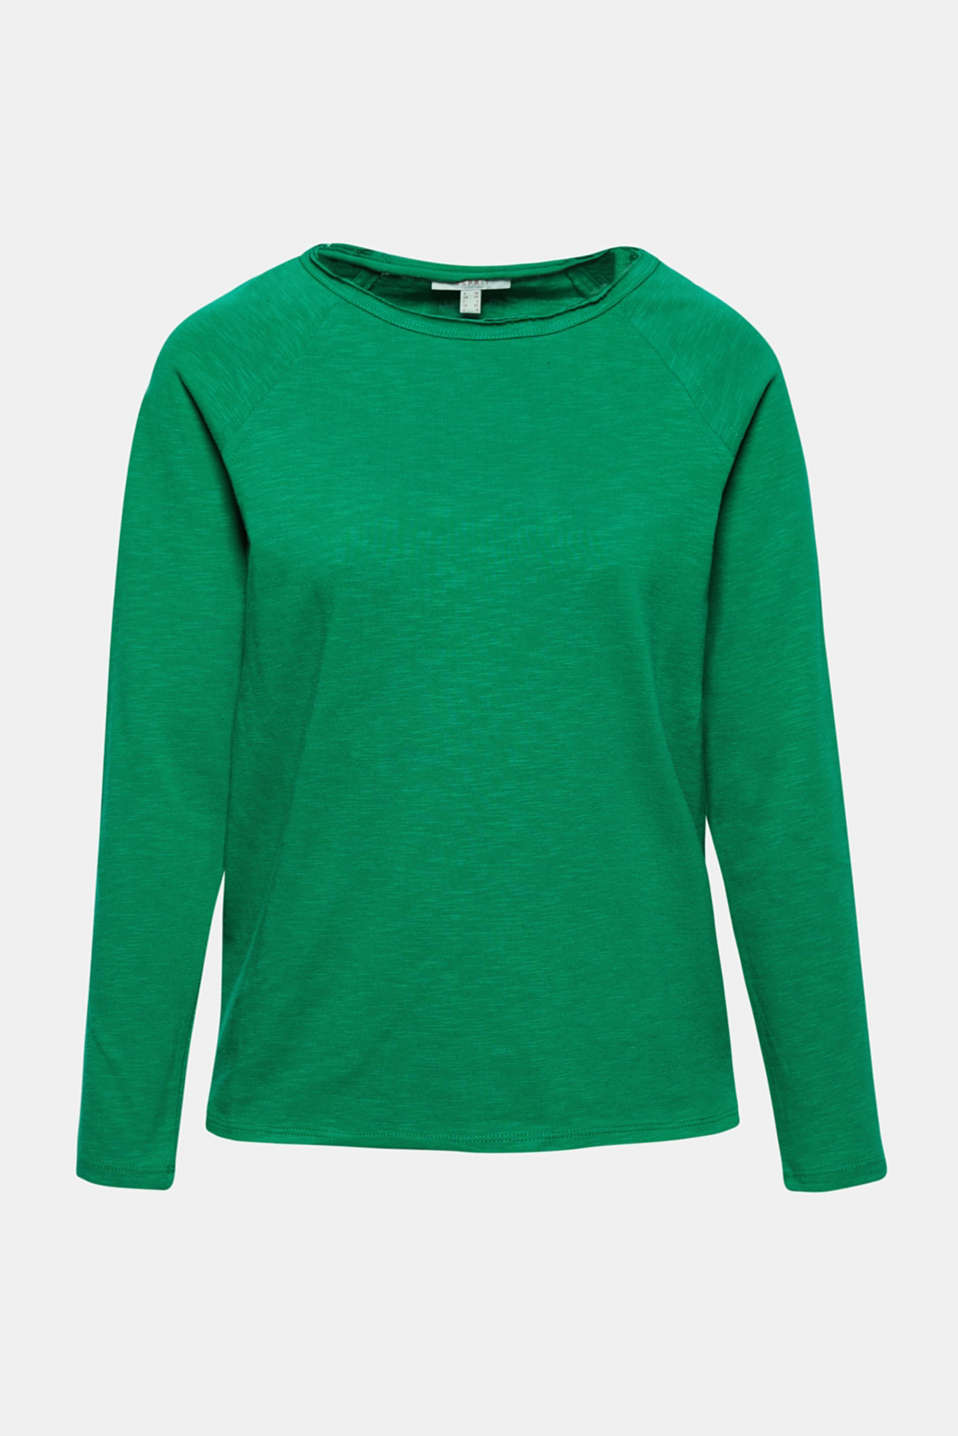 This pure cotton sweatshirt with unfinished edges is just right for a laid-back look!